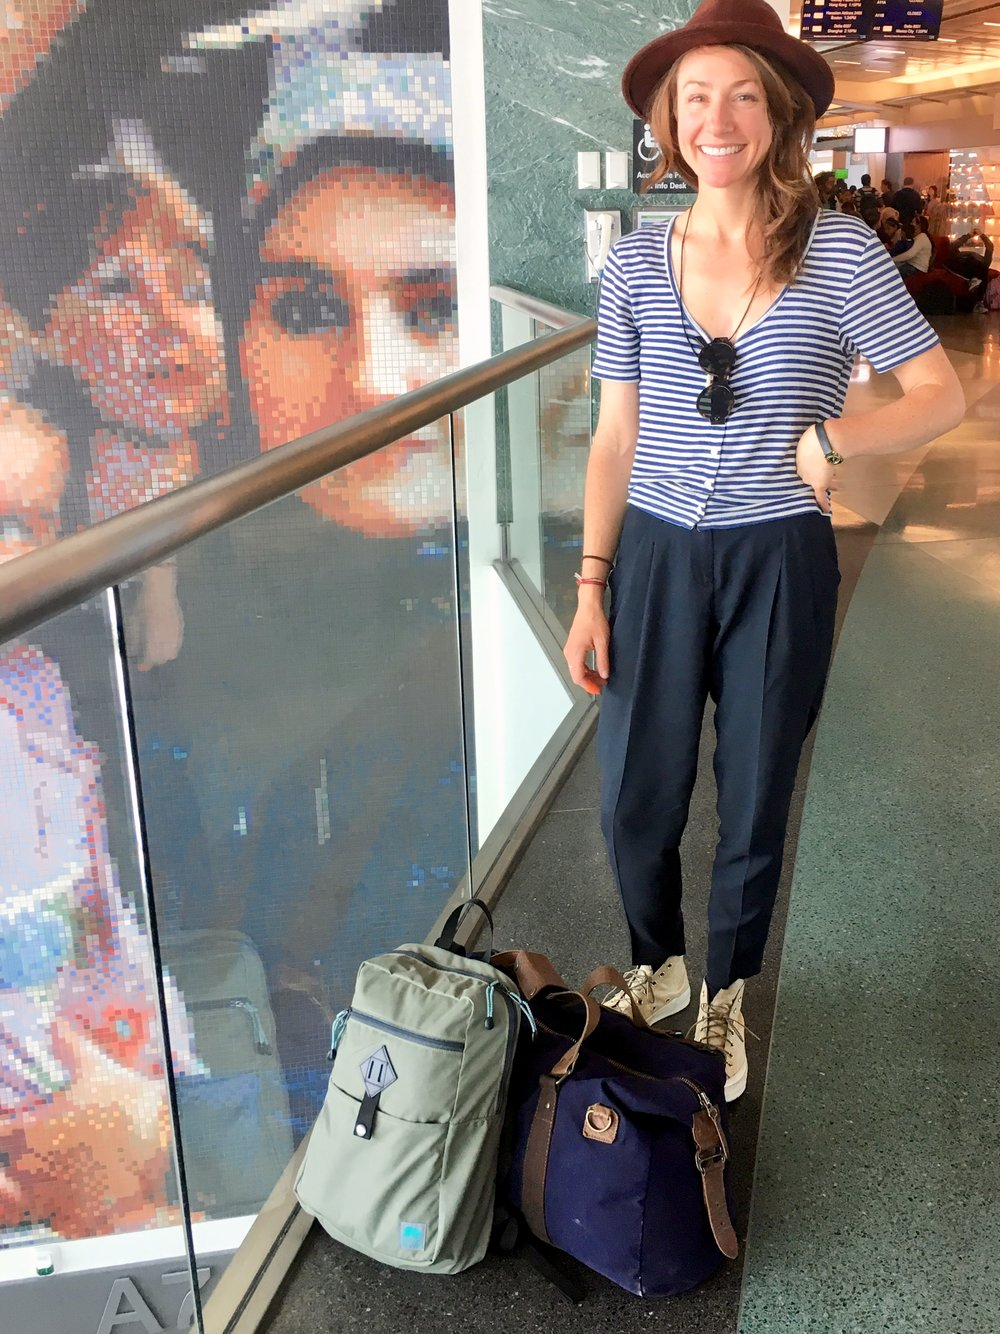 Proud mom moment, making a stranger take a photo of my and my babies, I mean luggage.